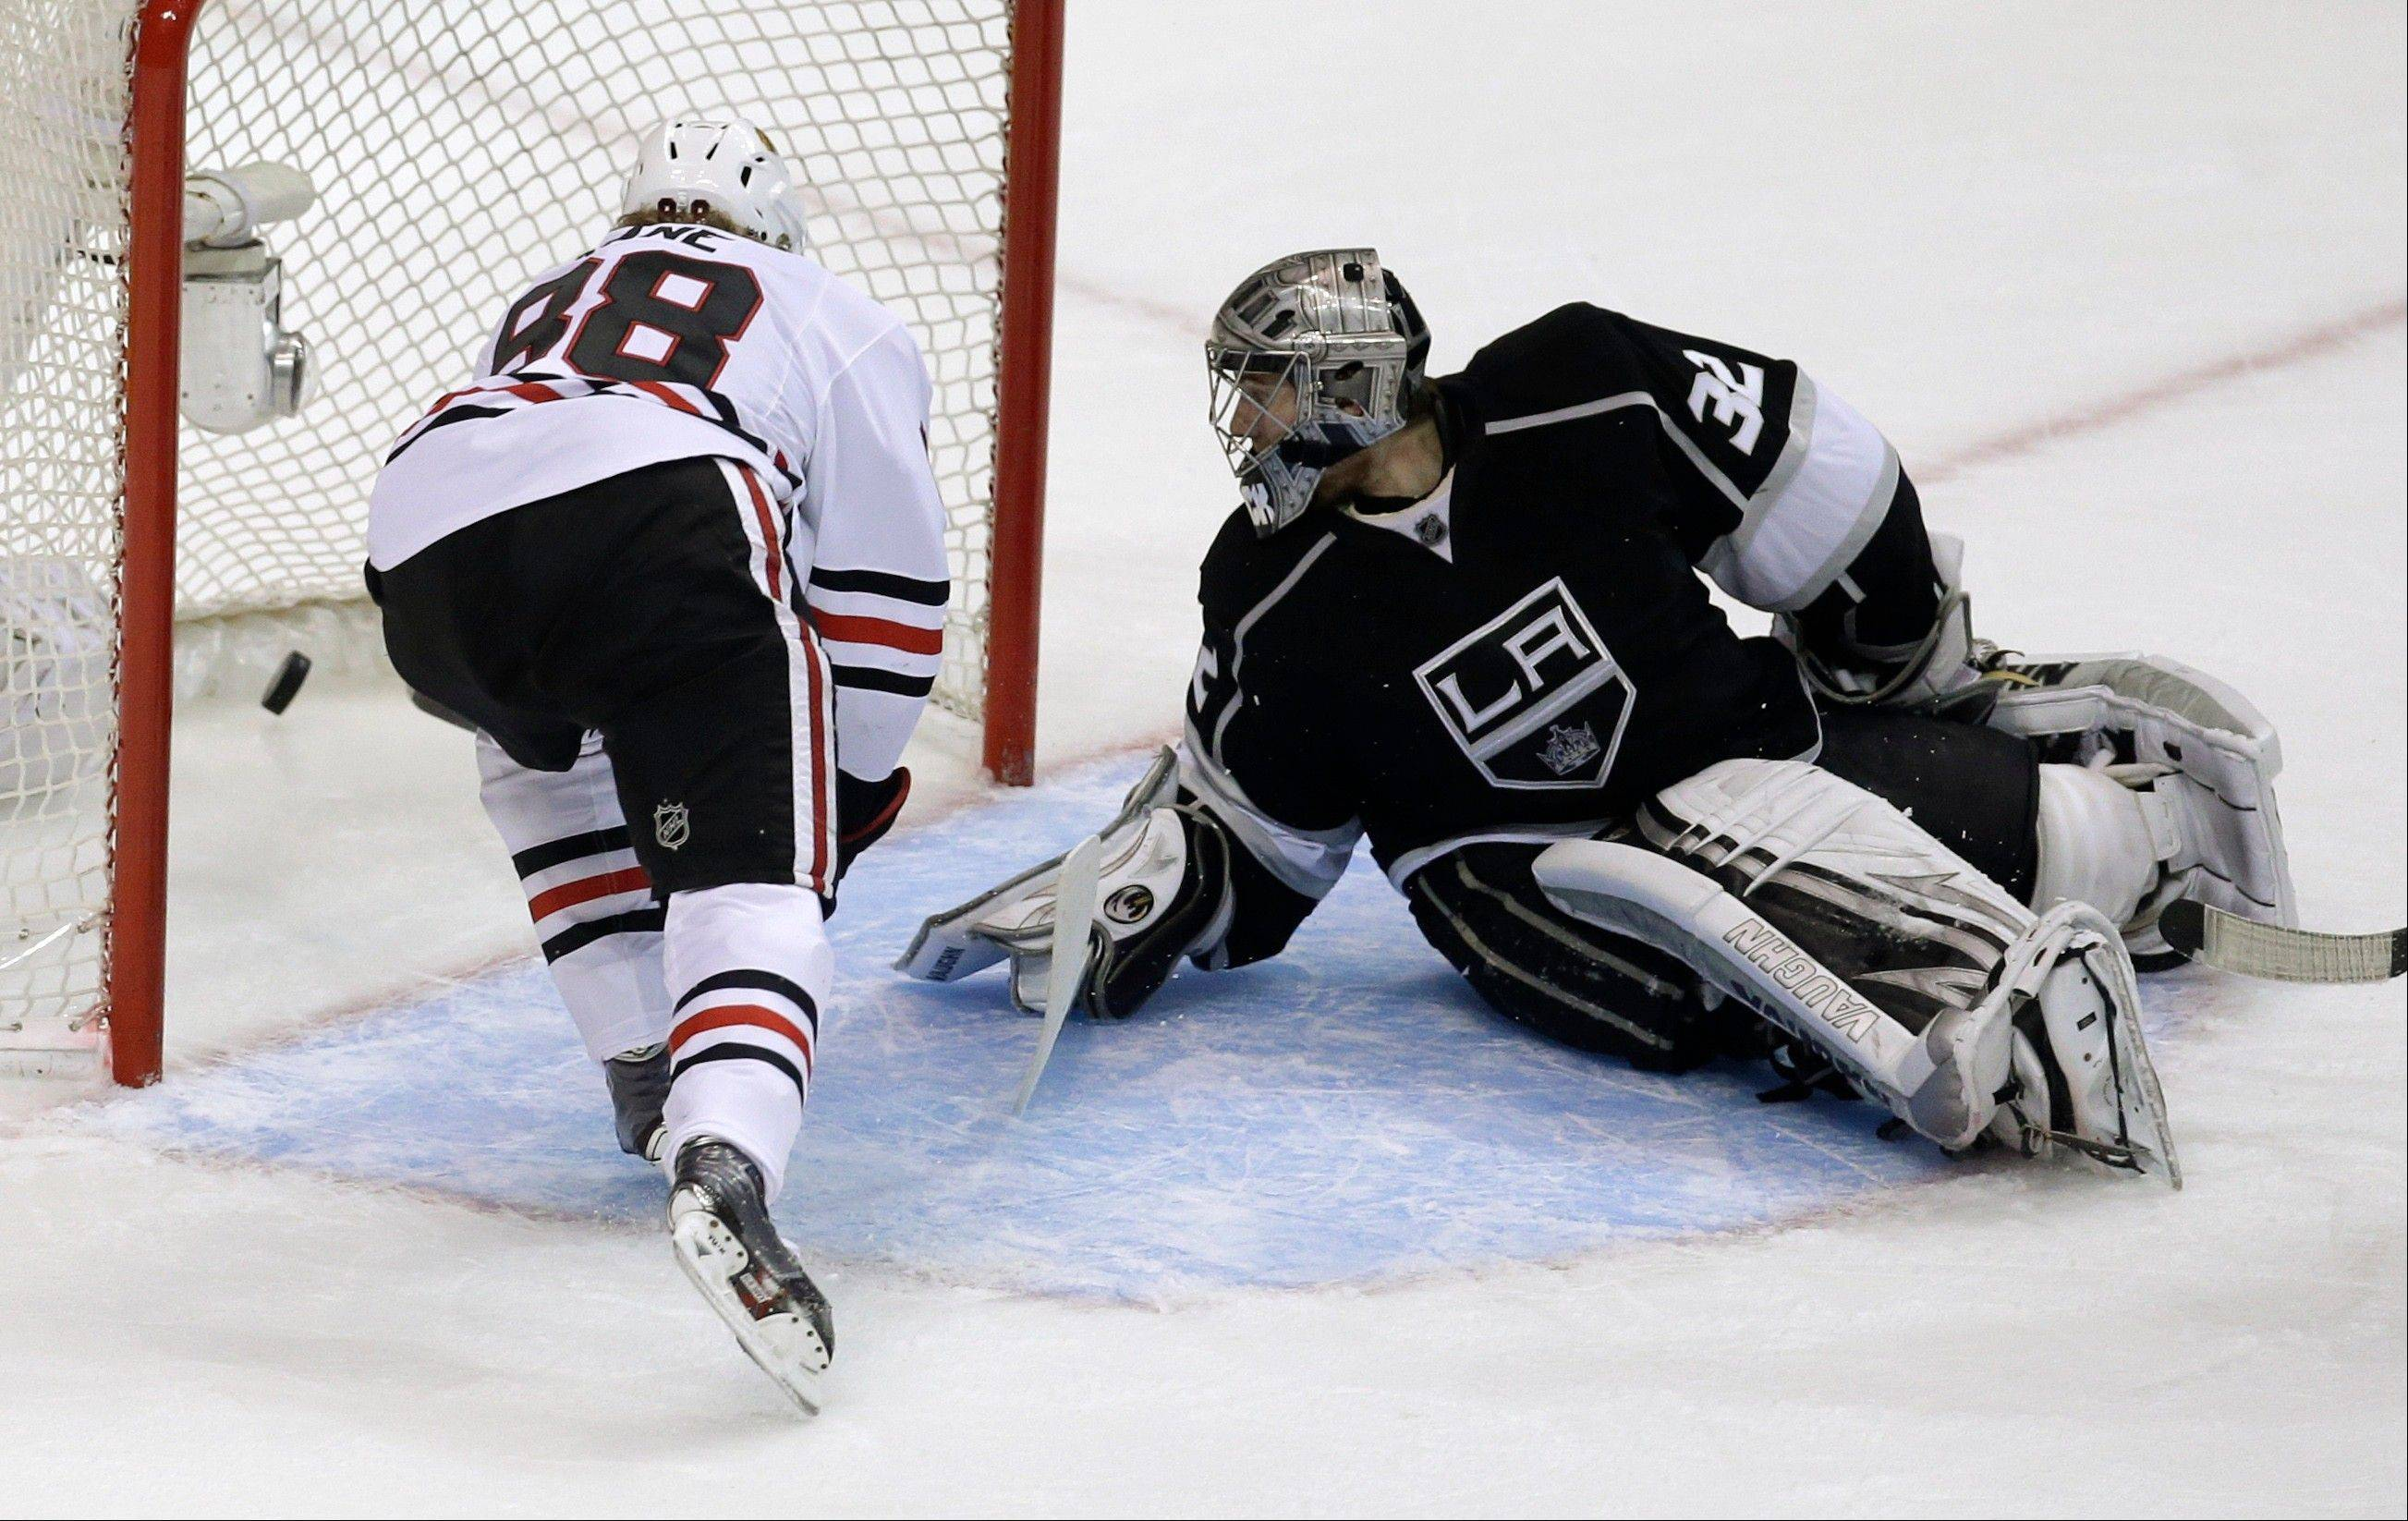 Chicago Blackhawks right wing Patrick Kane scores past Los Angeles Kings goalie Jonathan Quick during the second period in Game 4 of the NHL hockey Stanley Cup playoffs Western Conference finals, in Los Angeles, Thursday, June 6, 2013.